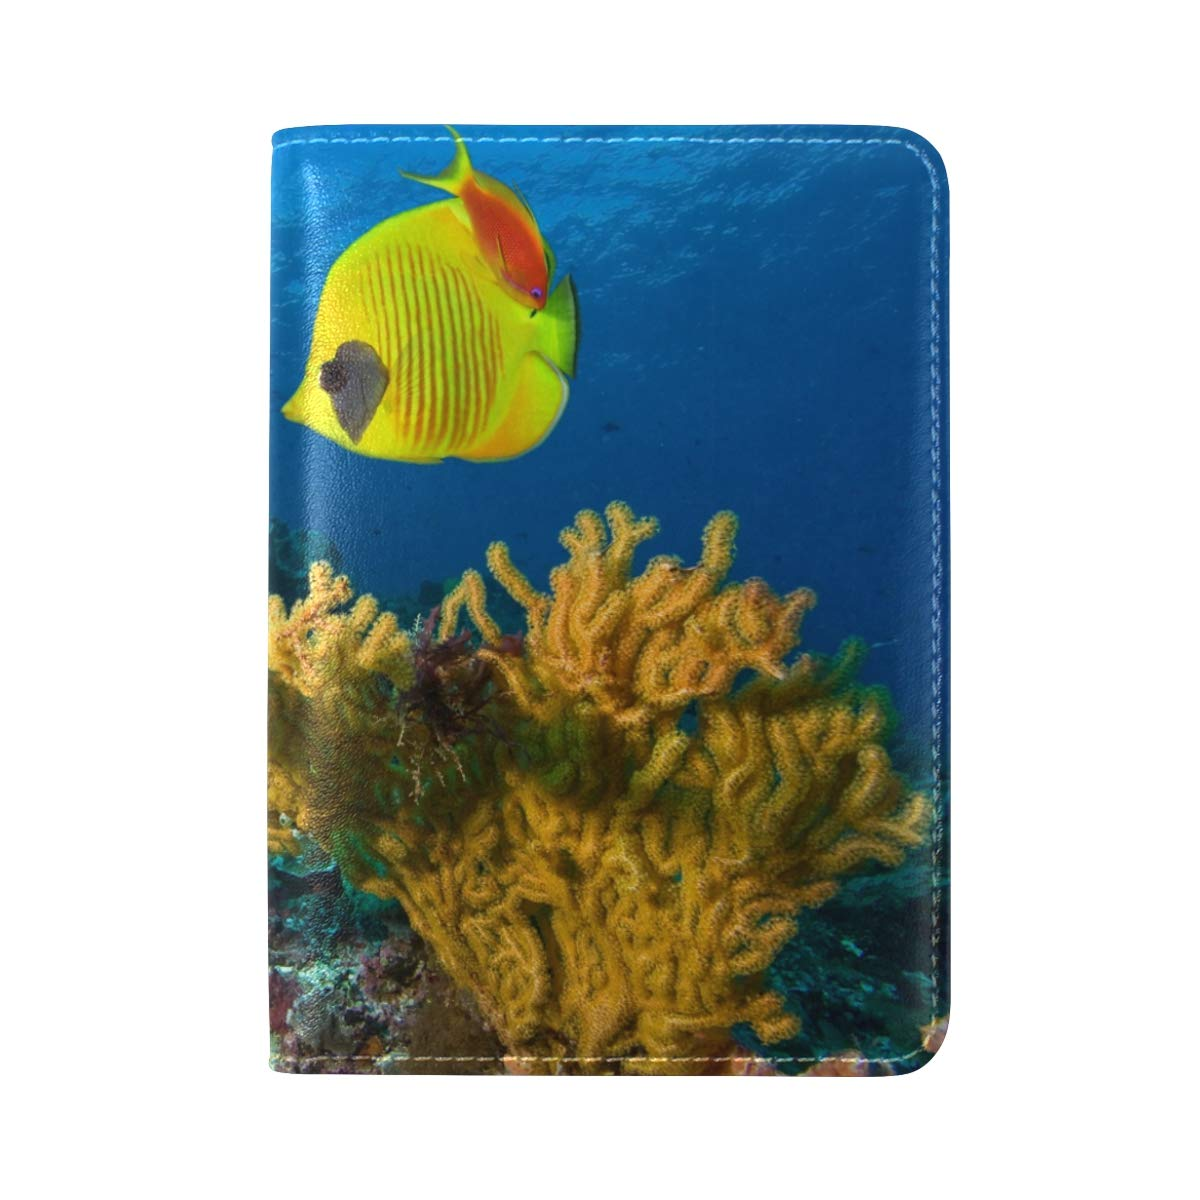 Fishes Tropical Ocean Sea Underwater One Pocket Leather Passport Holder Cover Case Protector for Men Women Travel